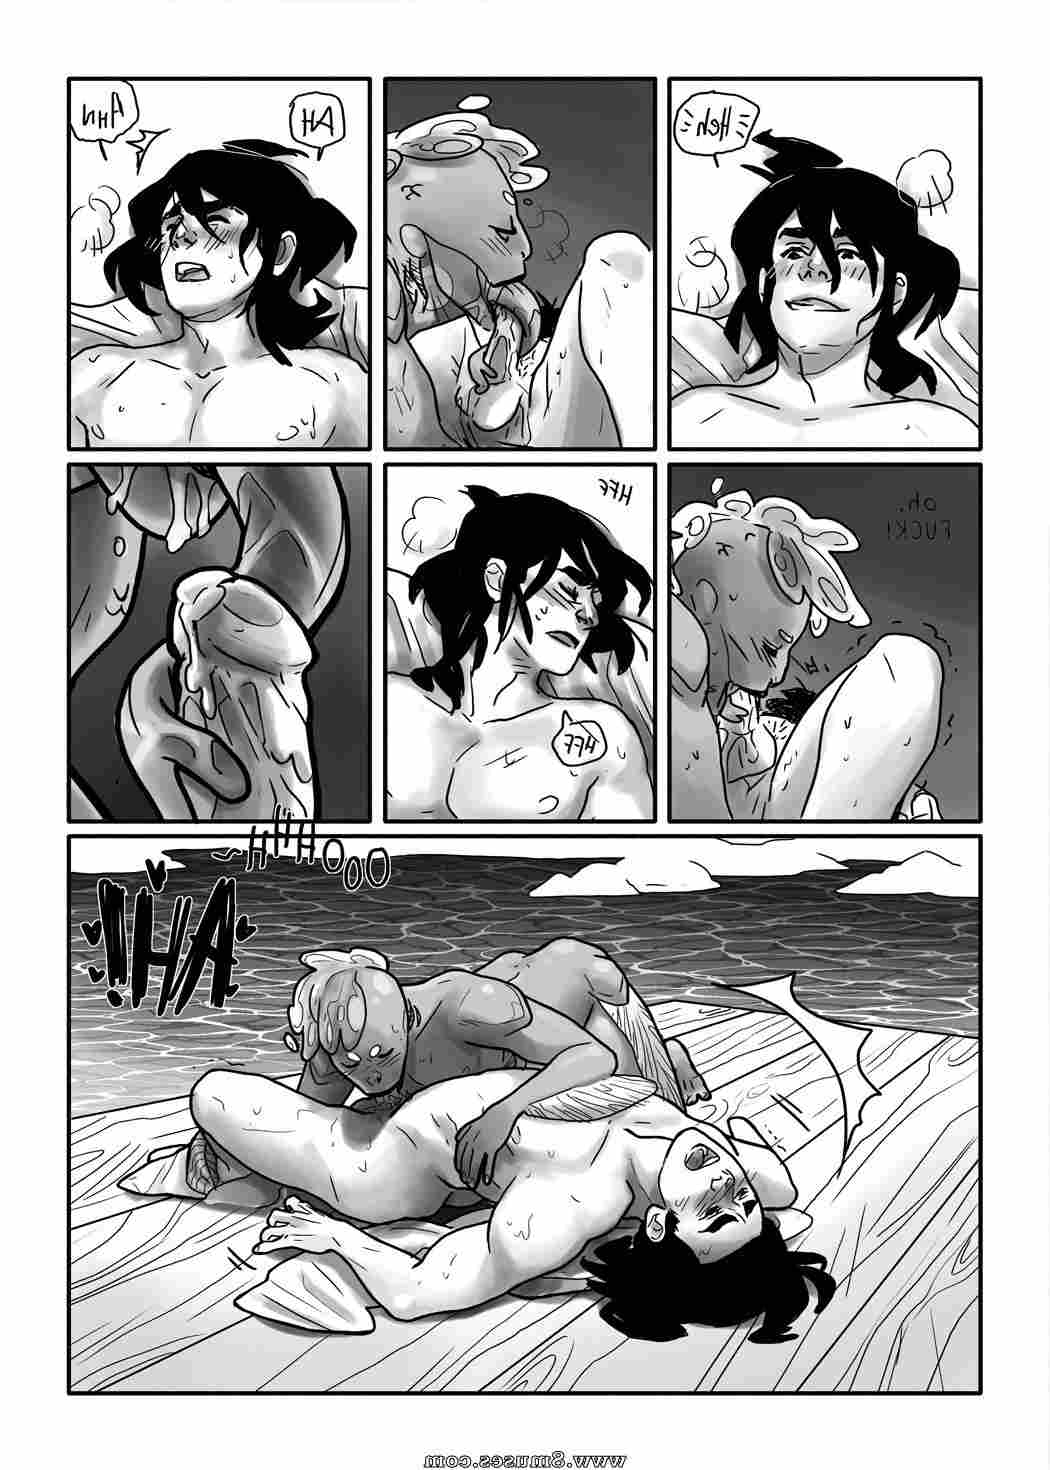 Slipshine-Comics/Creature-Feature Creature_Feature__8muses_-_Sex_and_Porn_Comics_10.jpg